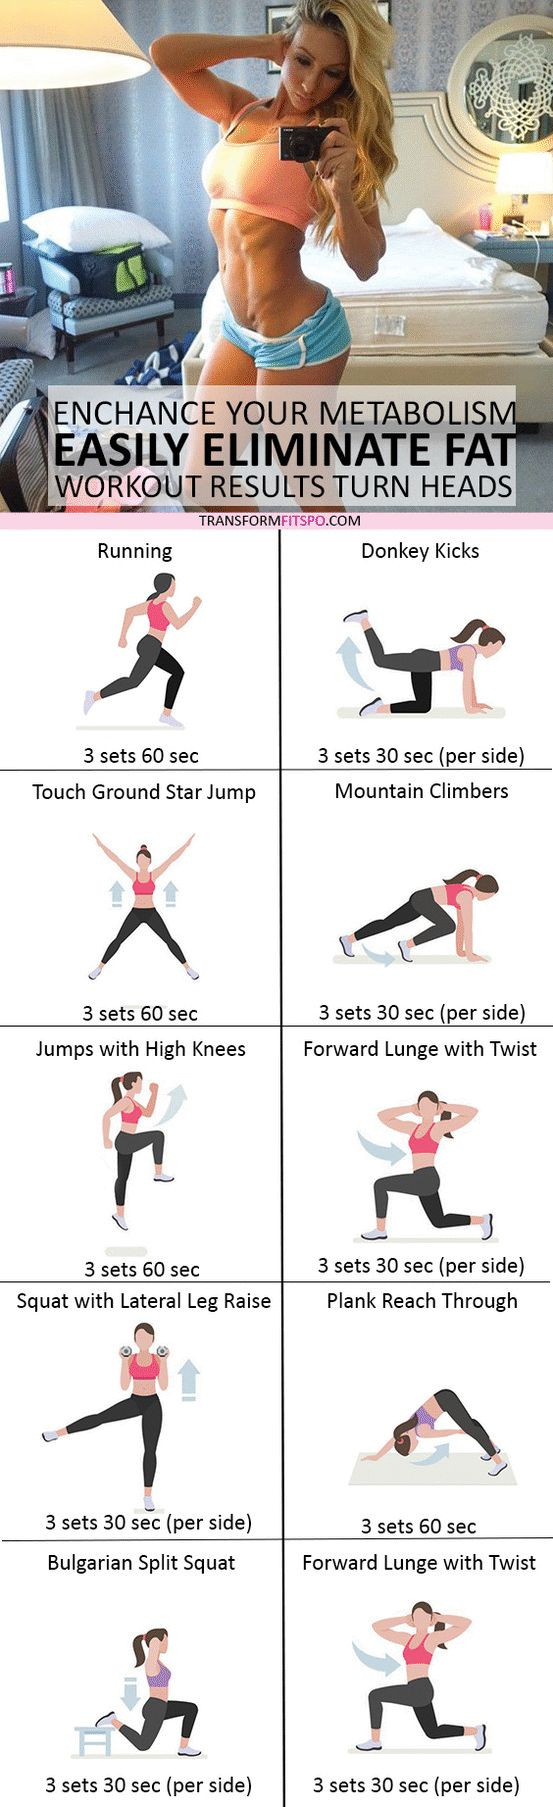 #womensworkout #workout #femalefitness Repin and share if this workout eliminated stubborn fat! Click the pin for the full workout.